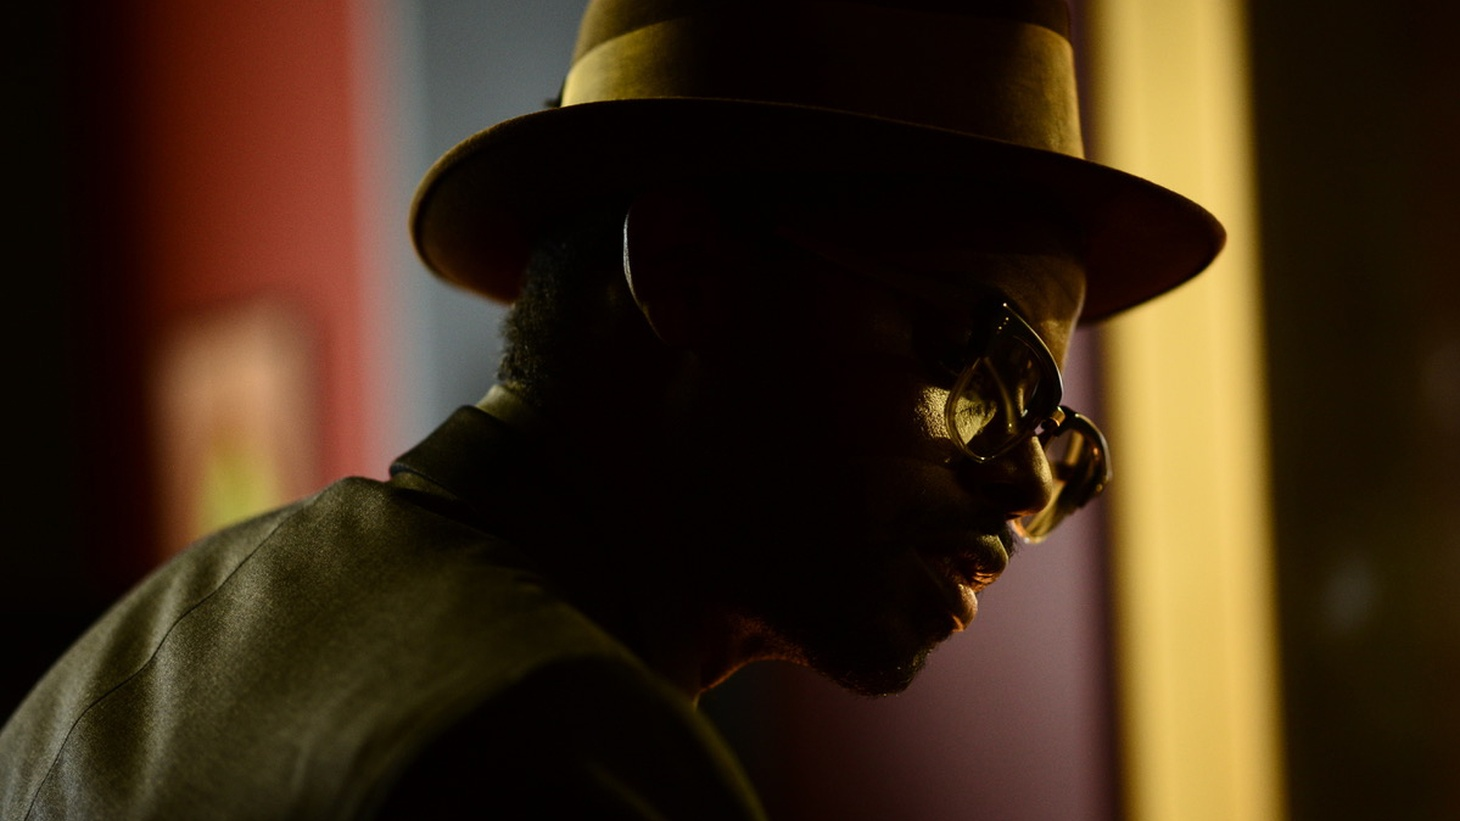 Let's take a journey into spiritual jazz, funk, and dark-soul with LA-based composer/producer/arranger Adrian Younge. He loves the sound of analog and doesn't use samples (he is an entertainment law professor after all).